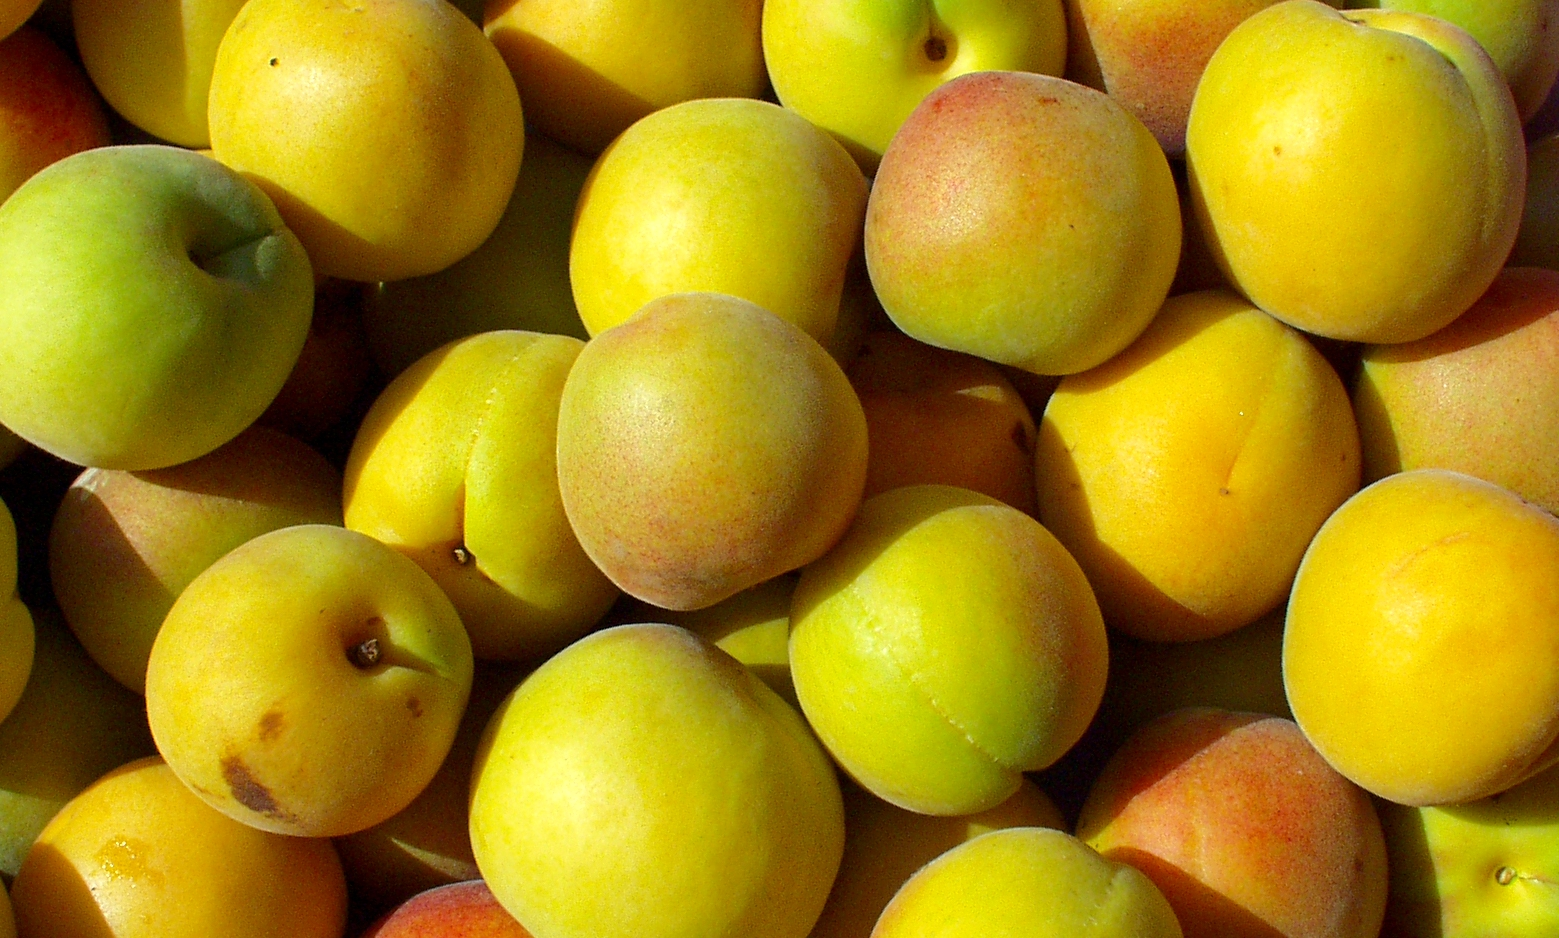 Tiny's Peach-cots, a cross between peaches and apricots. Photo copyright 2009 by Zachary D. Lyons.